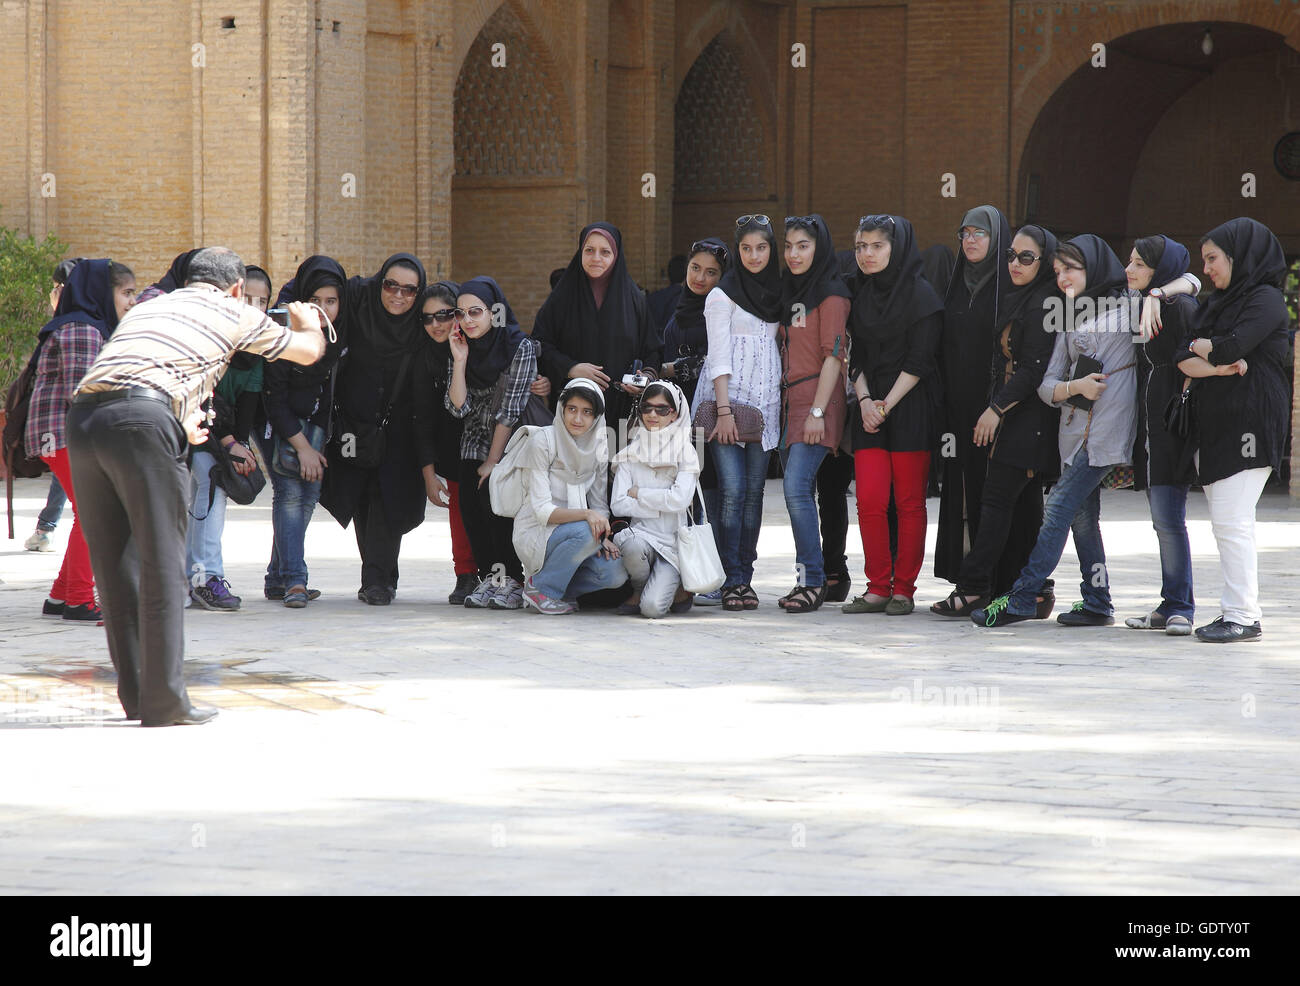 Group photo in Isfahan - Stock Image